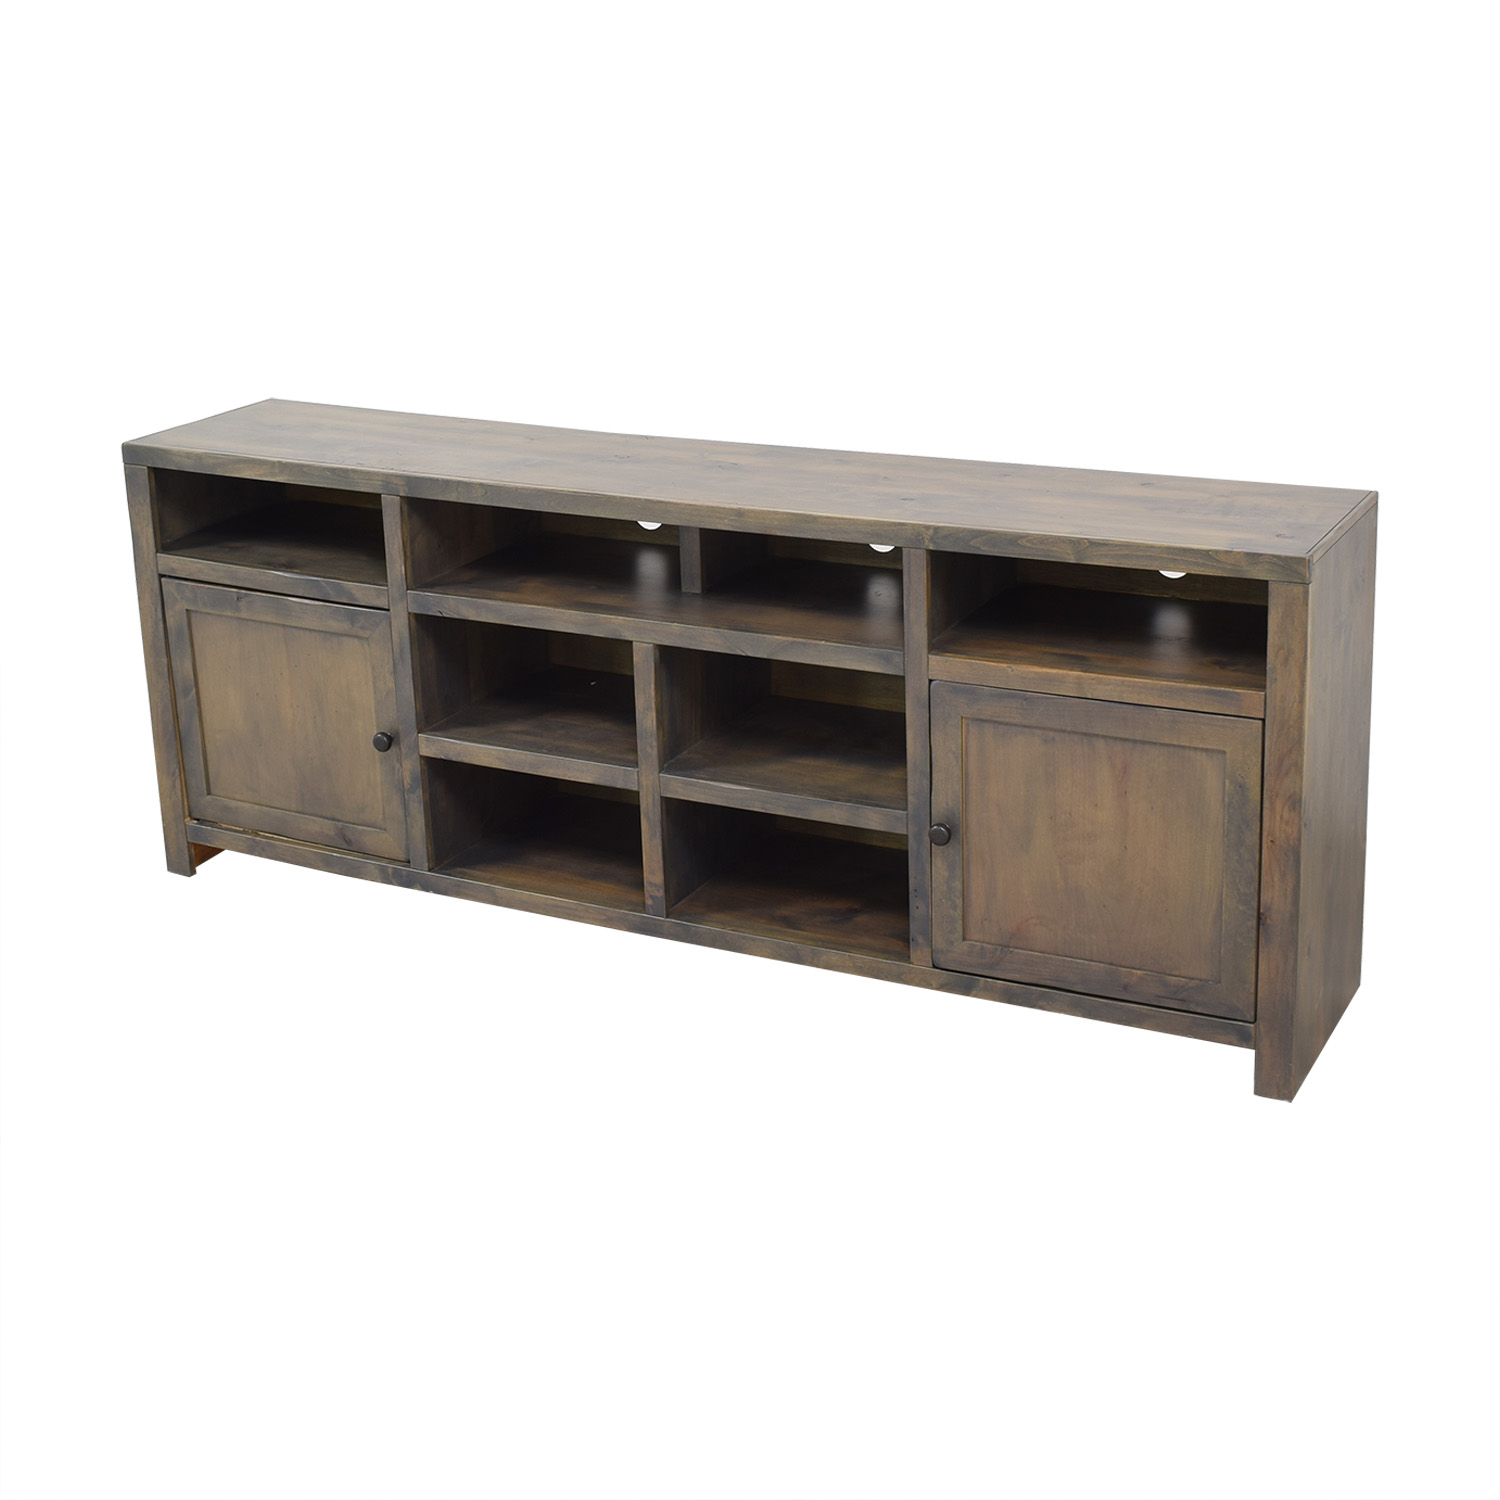 Legends Furniture Legends Furniture Joshua Creek Super Console second hand